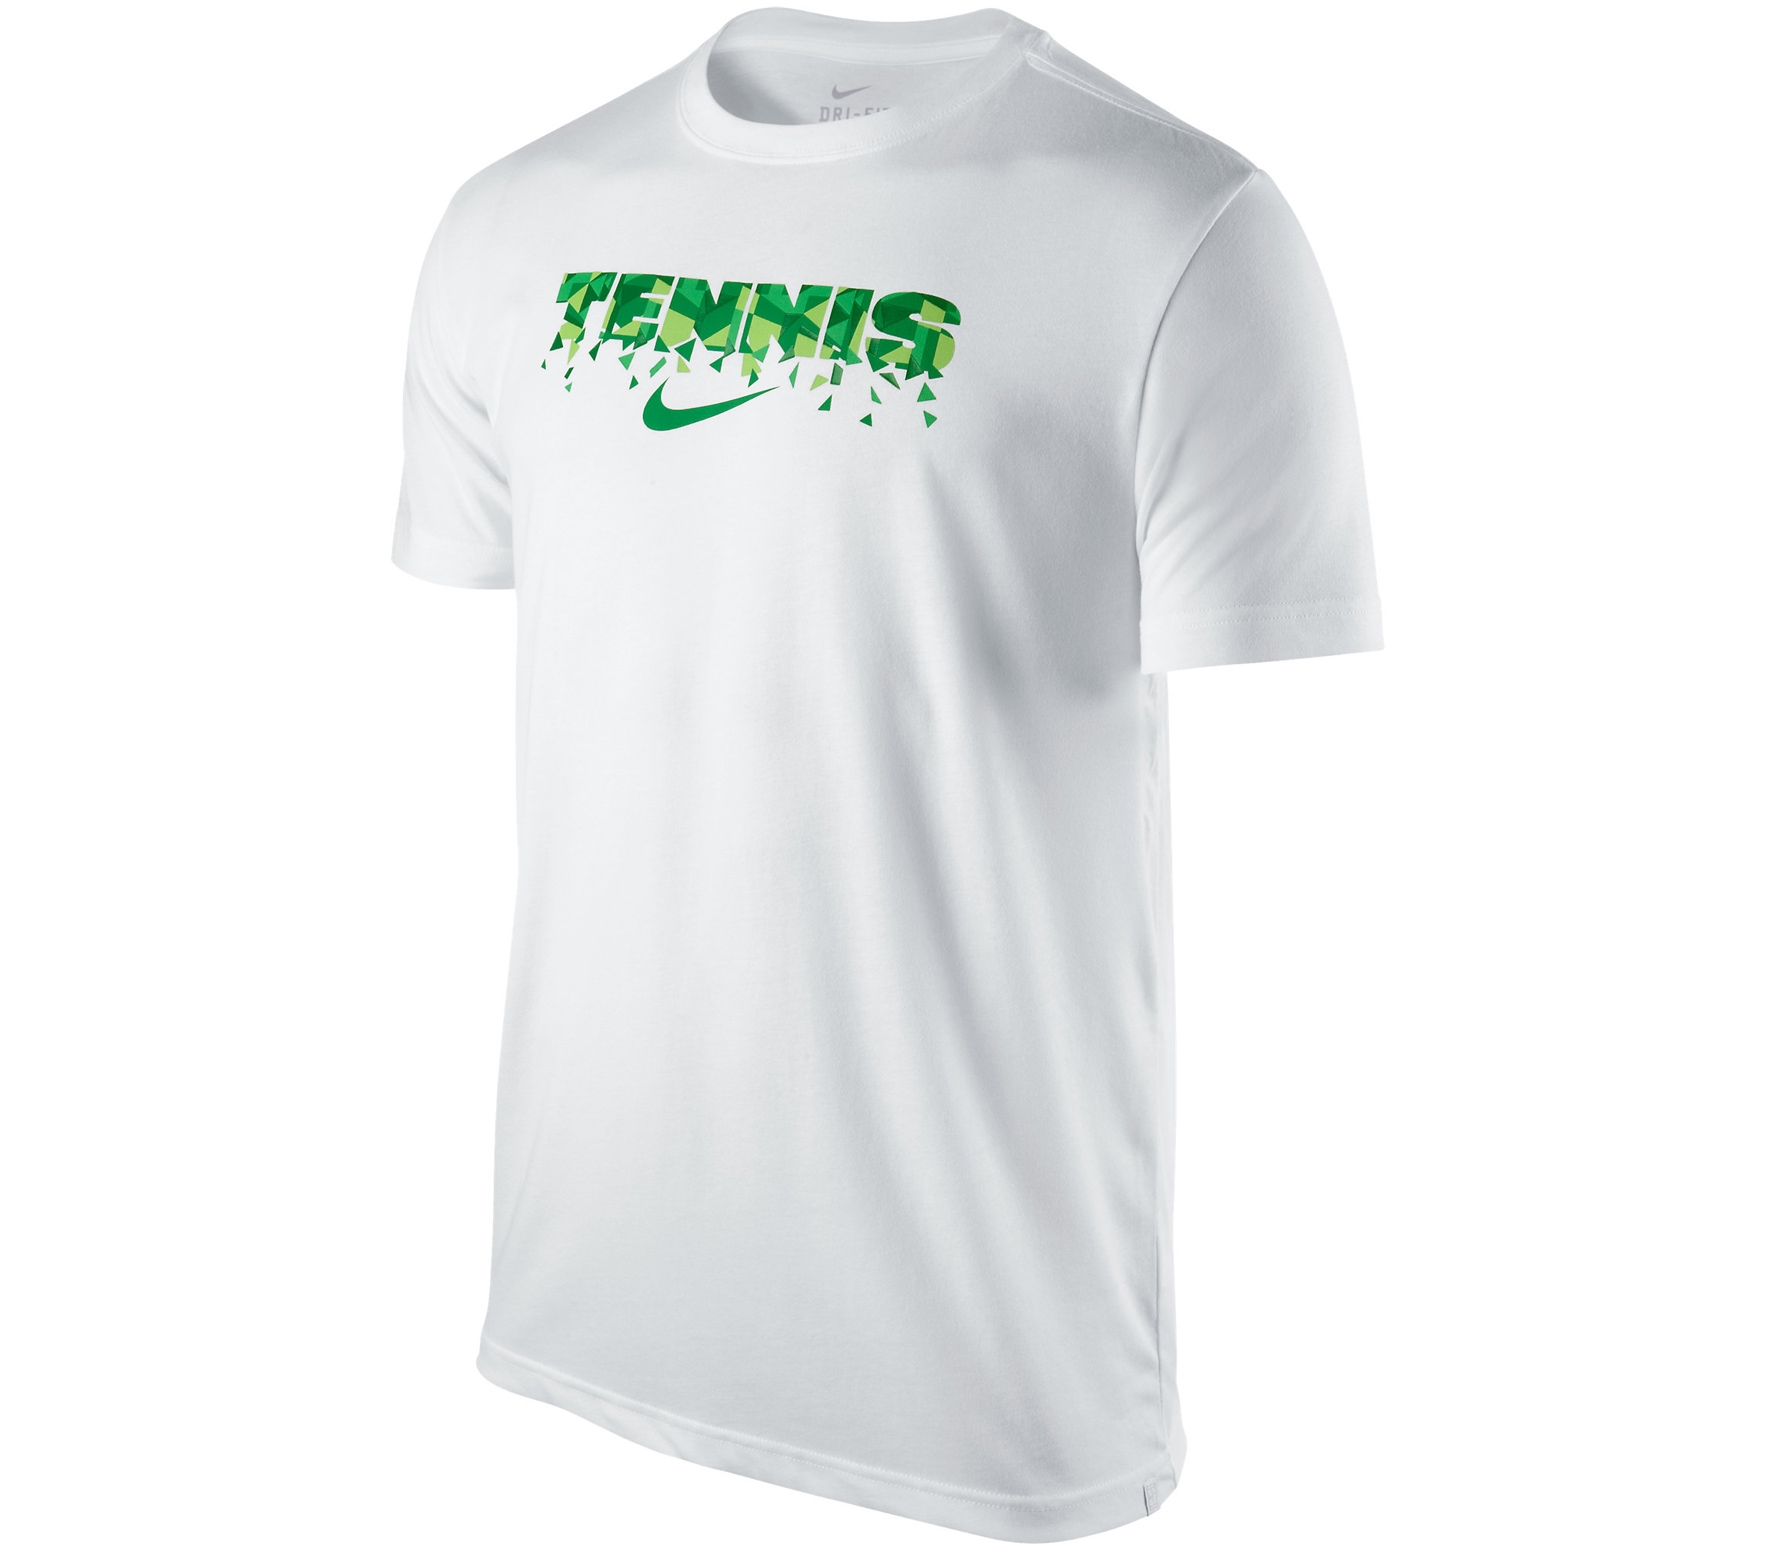 nike tennis swoosh mens t shirt pictures to pin on pinterest. Black Bedroom Furniture Sets. Home Design Ideas